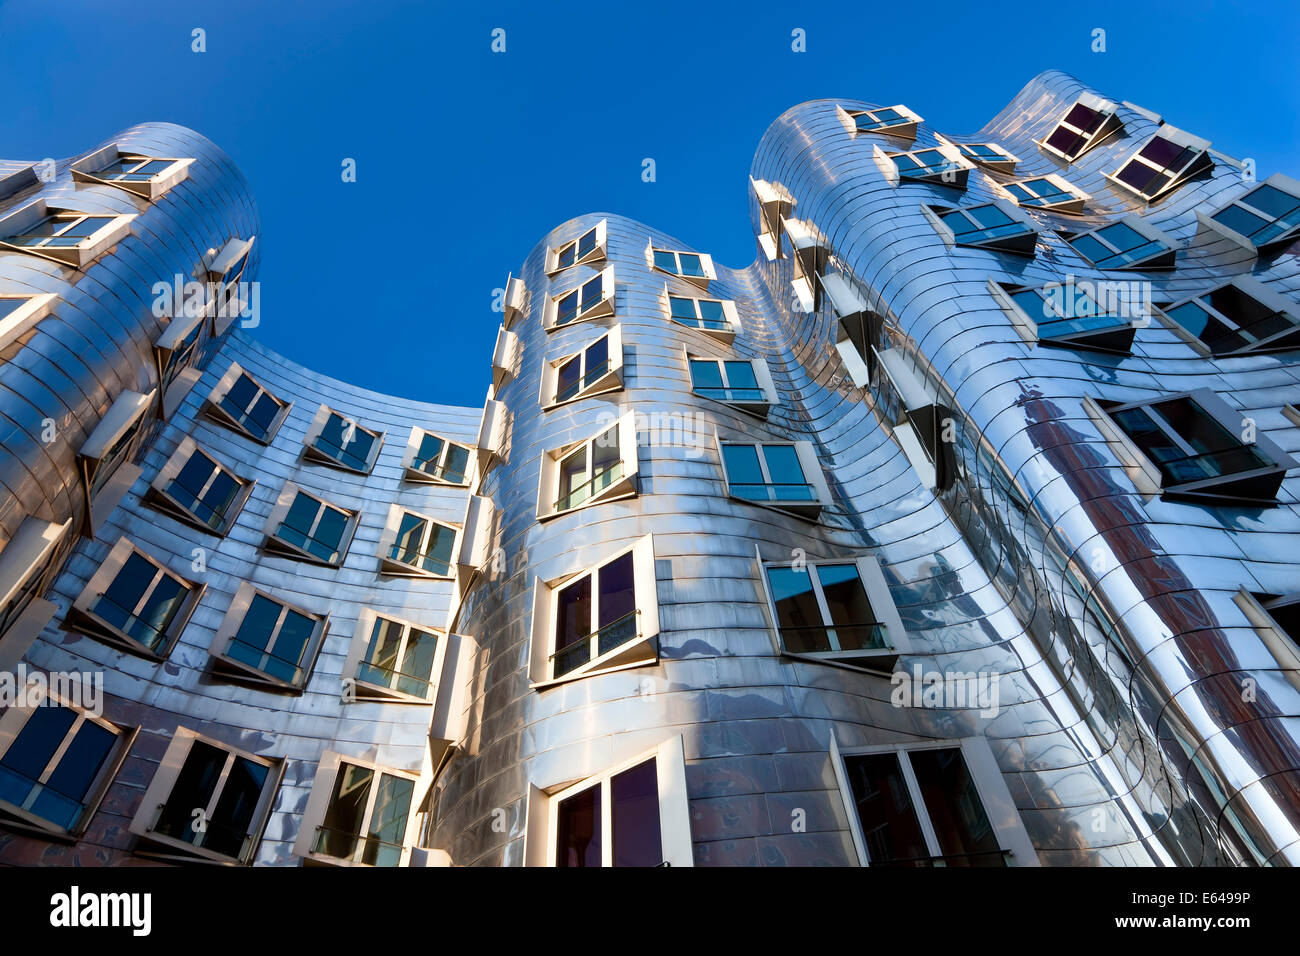 The Neuer Zollhof building by Frank Gehry at the Medienhafen or Media Harbour, Dusseldorf, Germany. - Stock Image